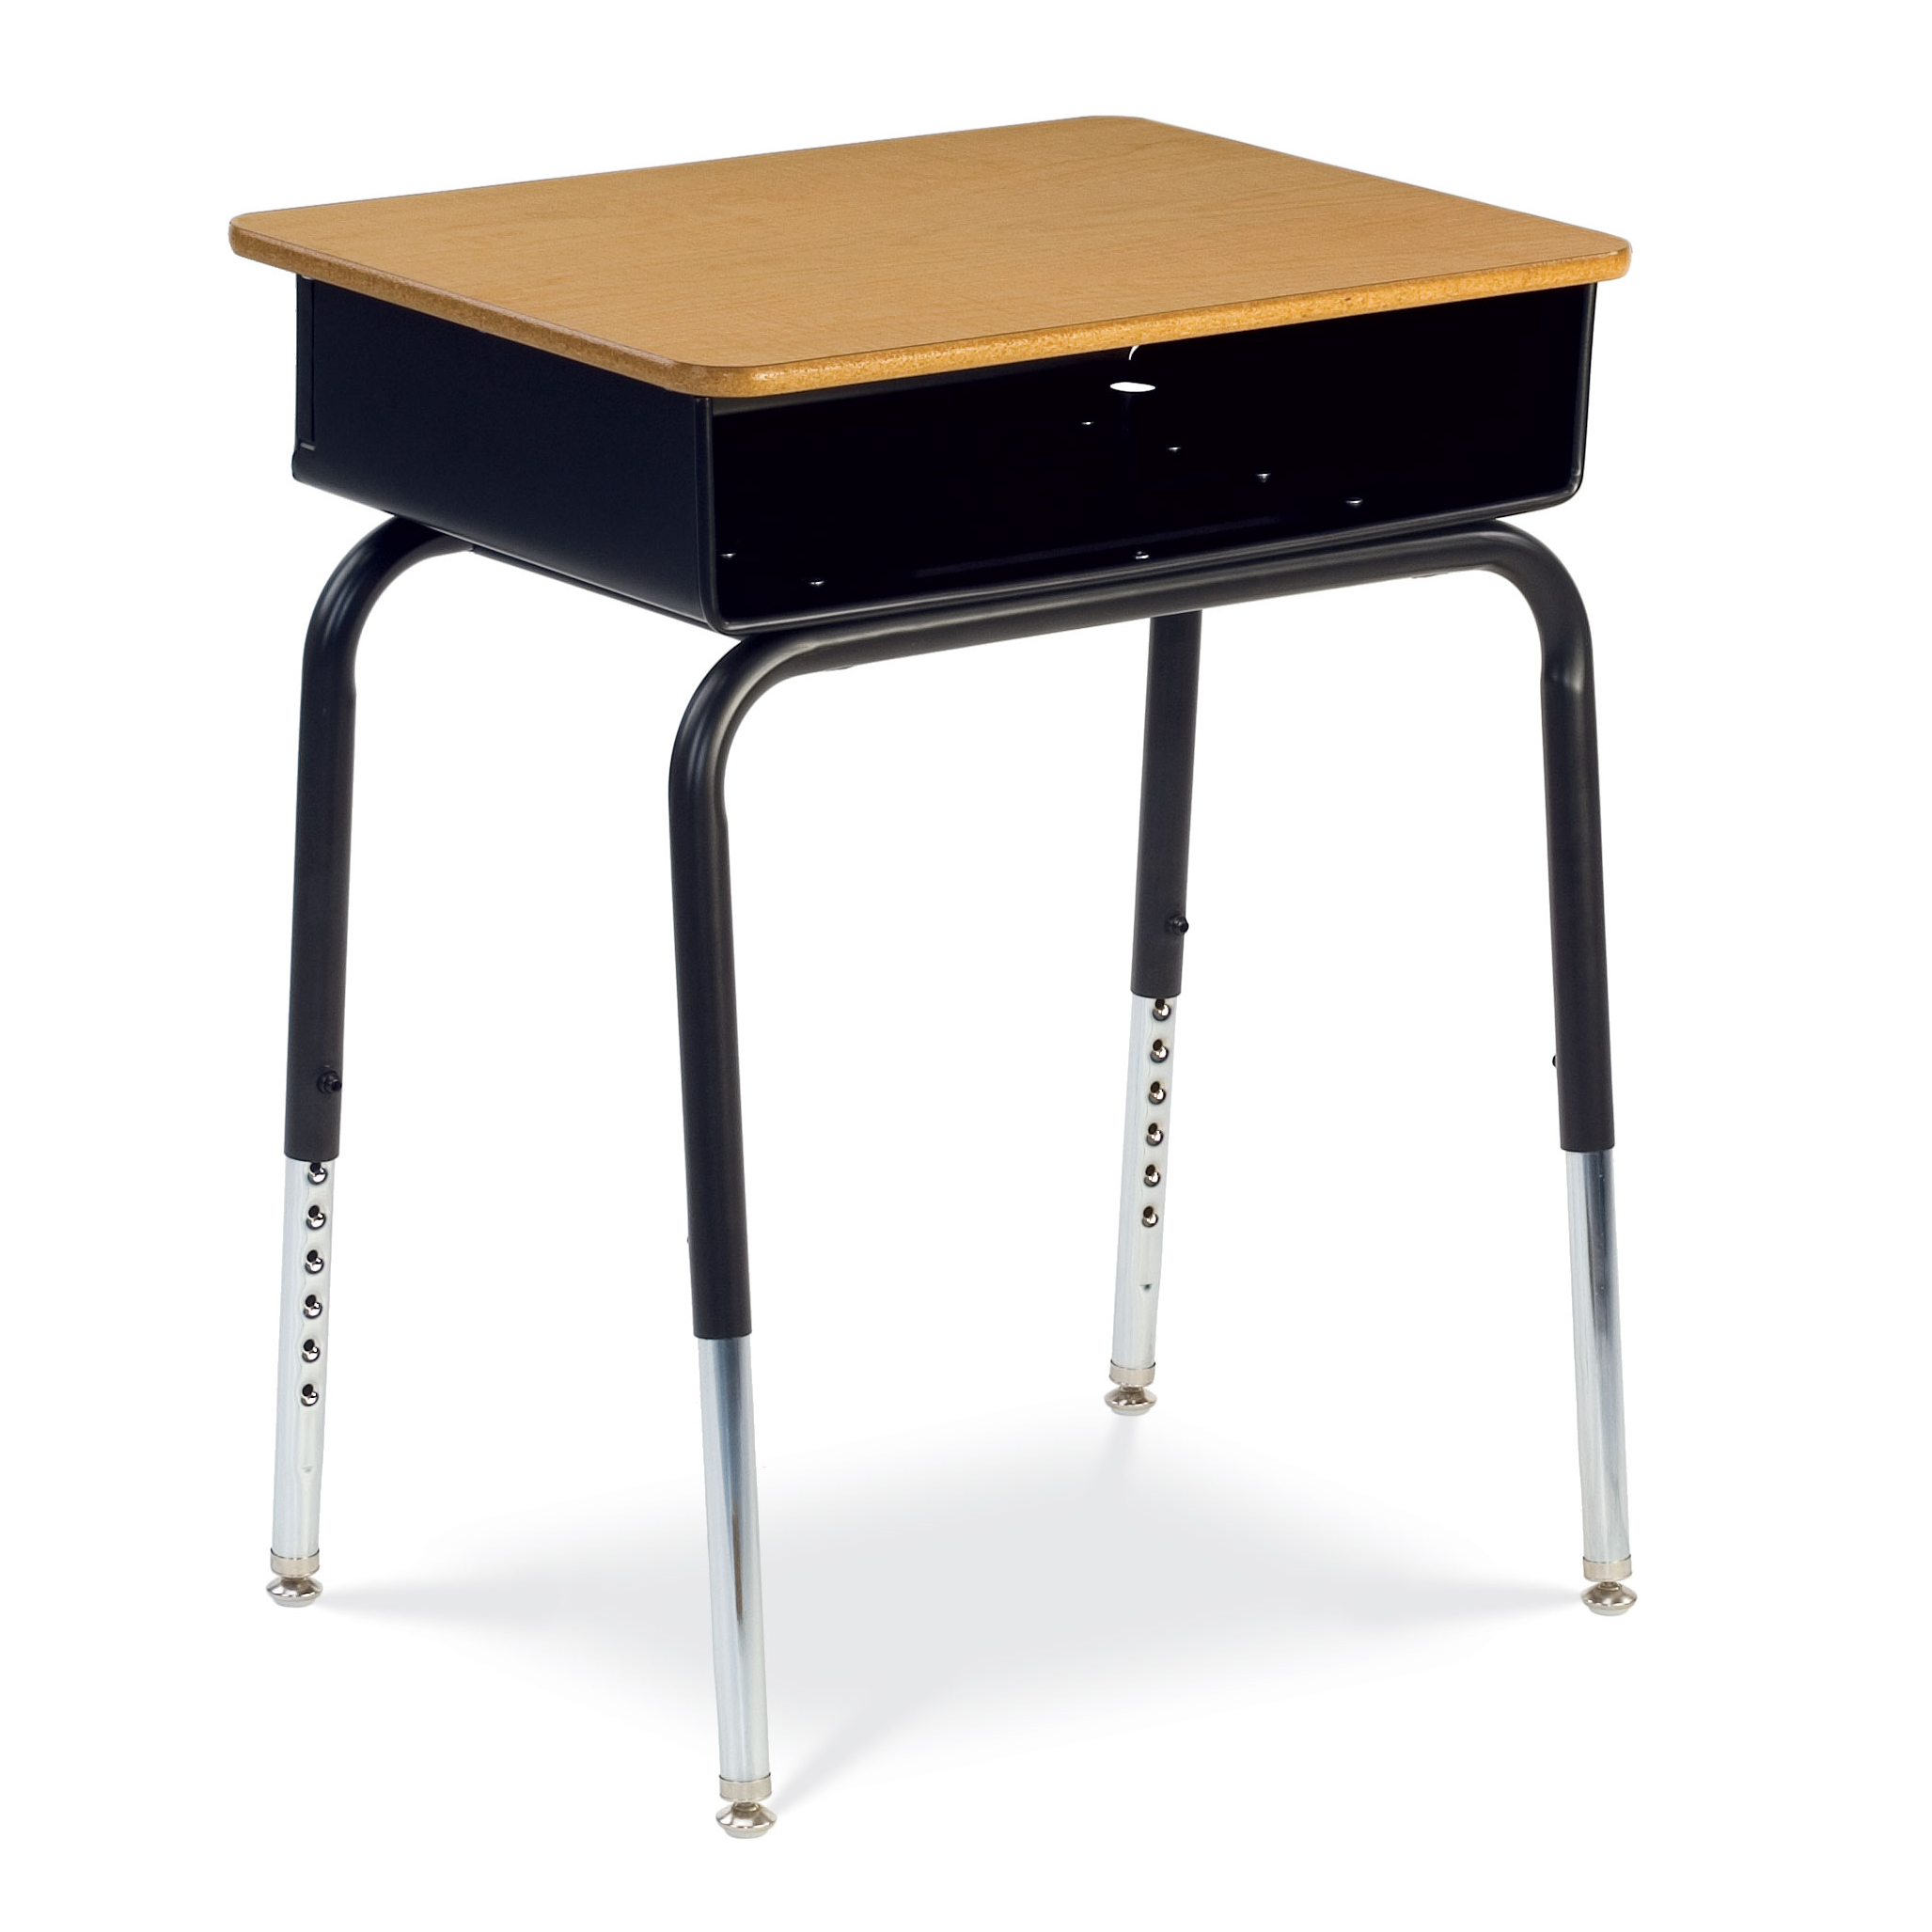 Desk clipart school table The Student Desk Clipart clipart